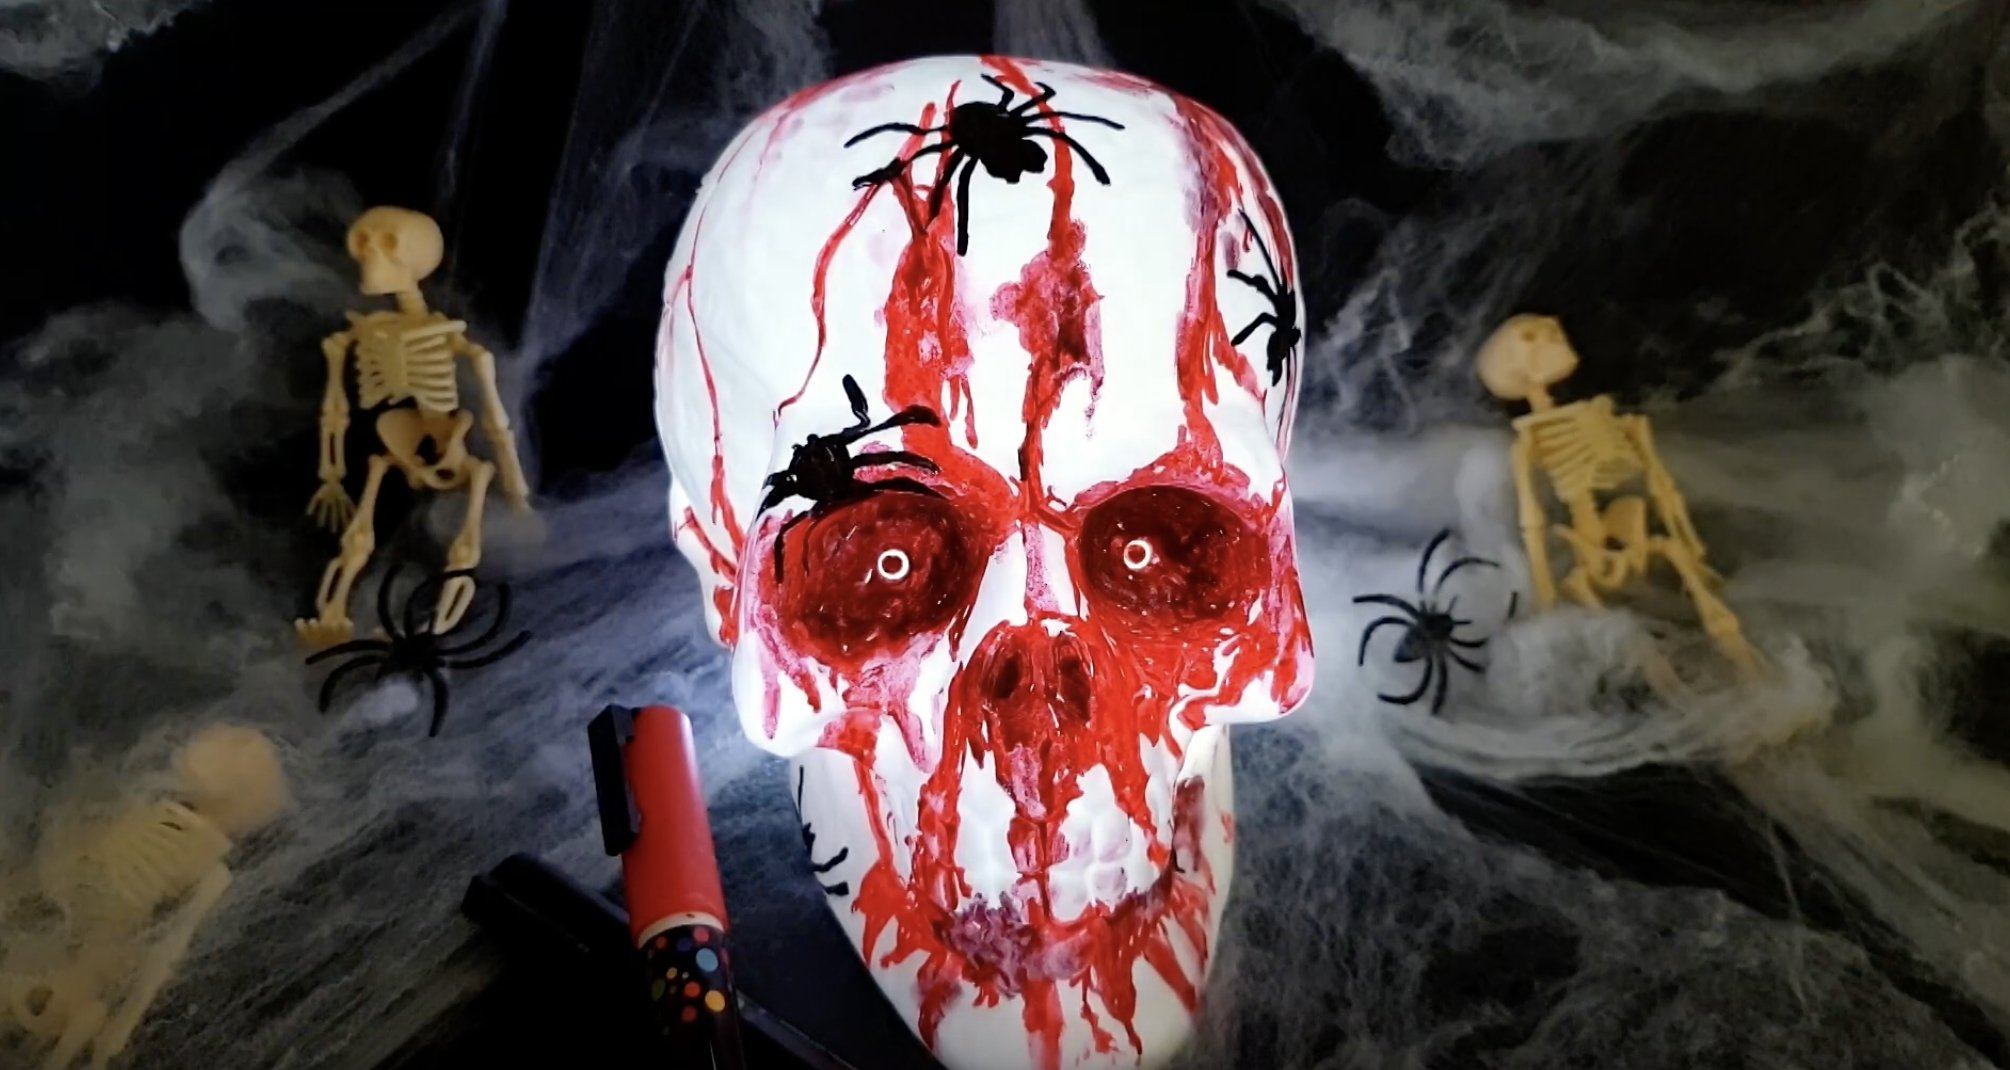 Halloween Skull Decorations.How To Make A Spooky Halloween Skull Decoration Chalkola Art Supply